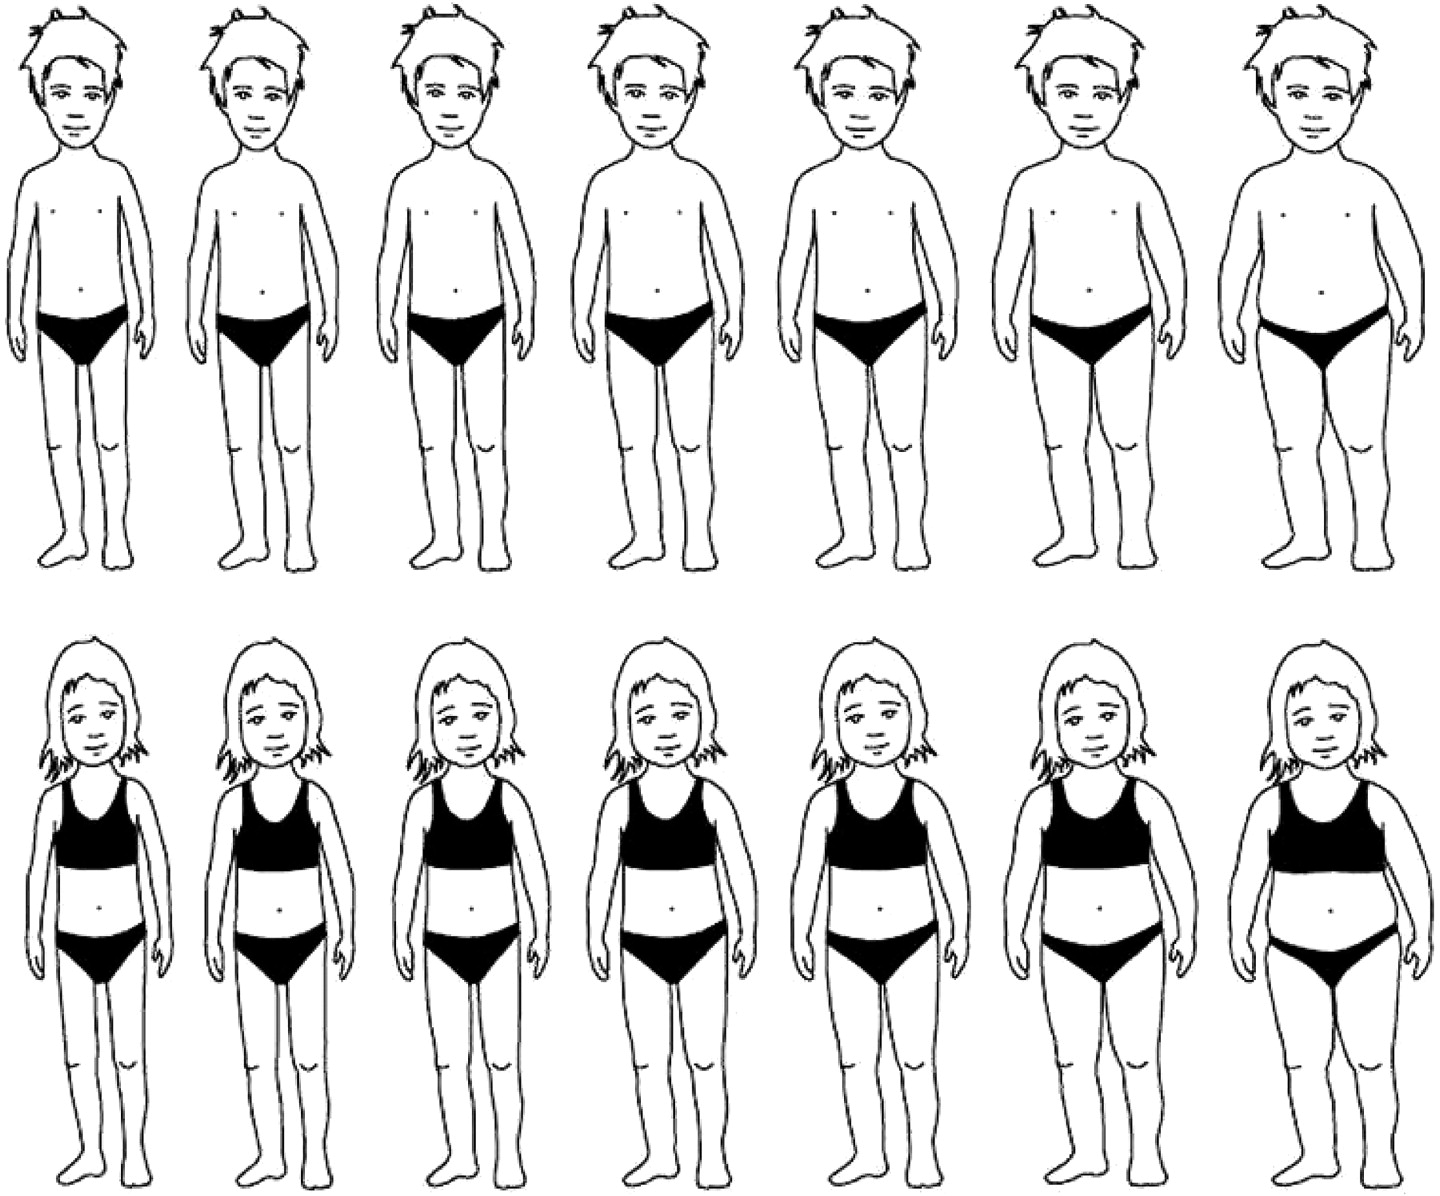 1440x1196 Maternal Perception Of Weight Status And Health Risks Associated